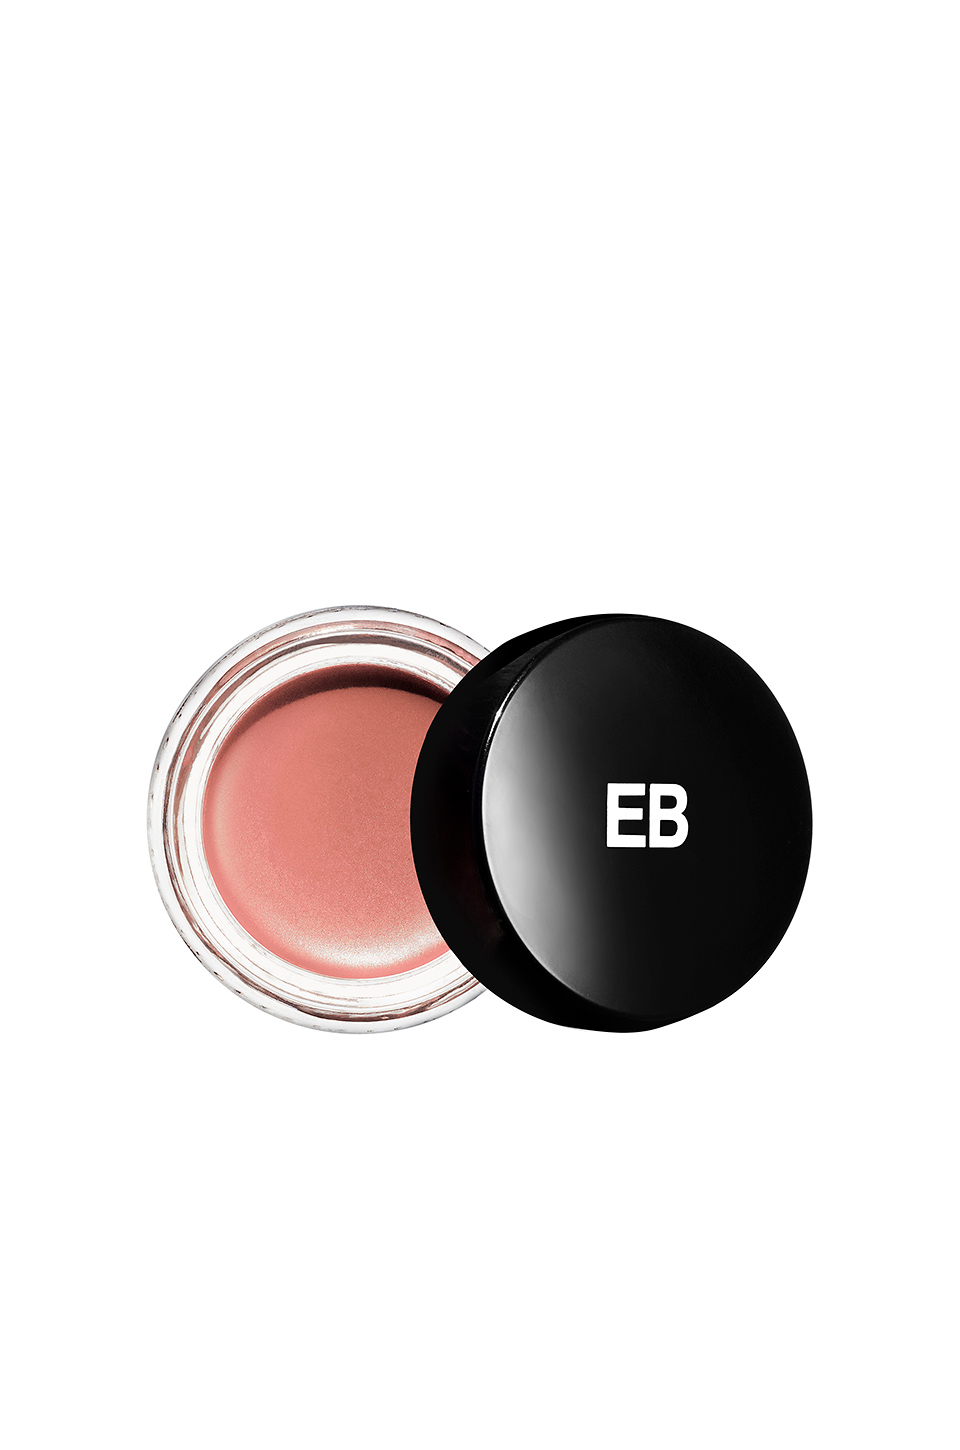 Edward Bess Glossy Rouge for Lips and Cheeks in Naked Rose